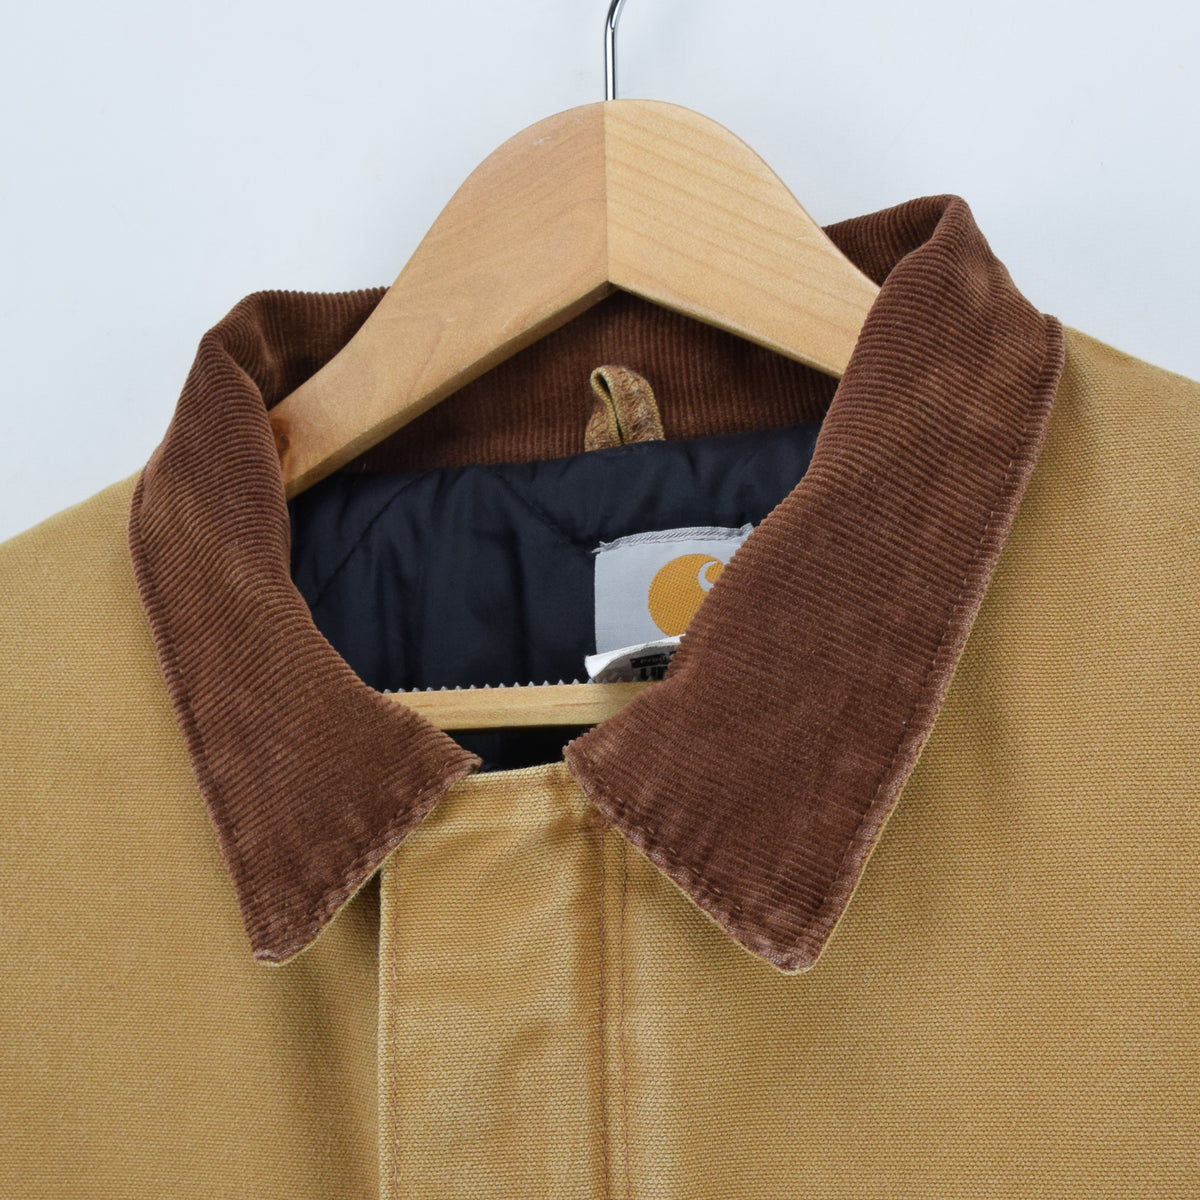 Vintage Carhartt Duck Canvas Tan Brown Worker Chore Jacket Made in USA XXL collar